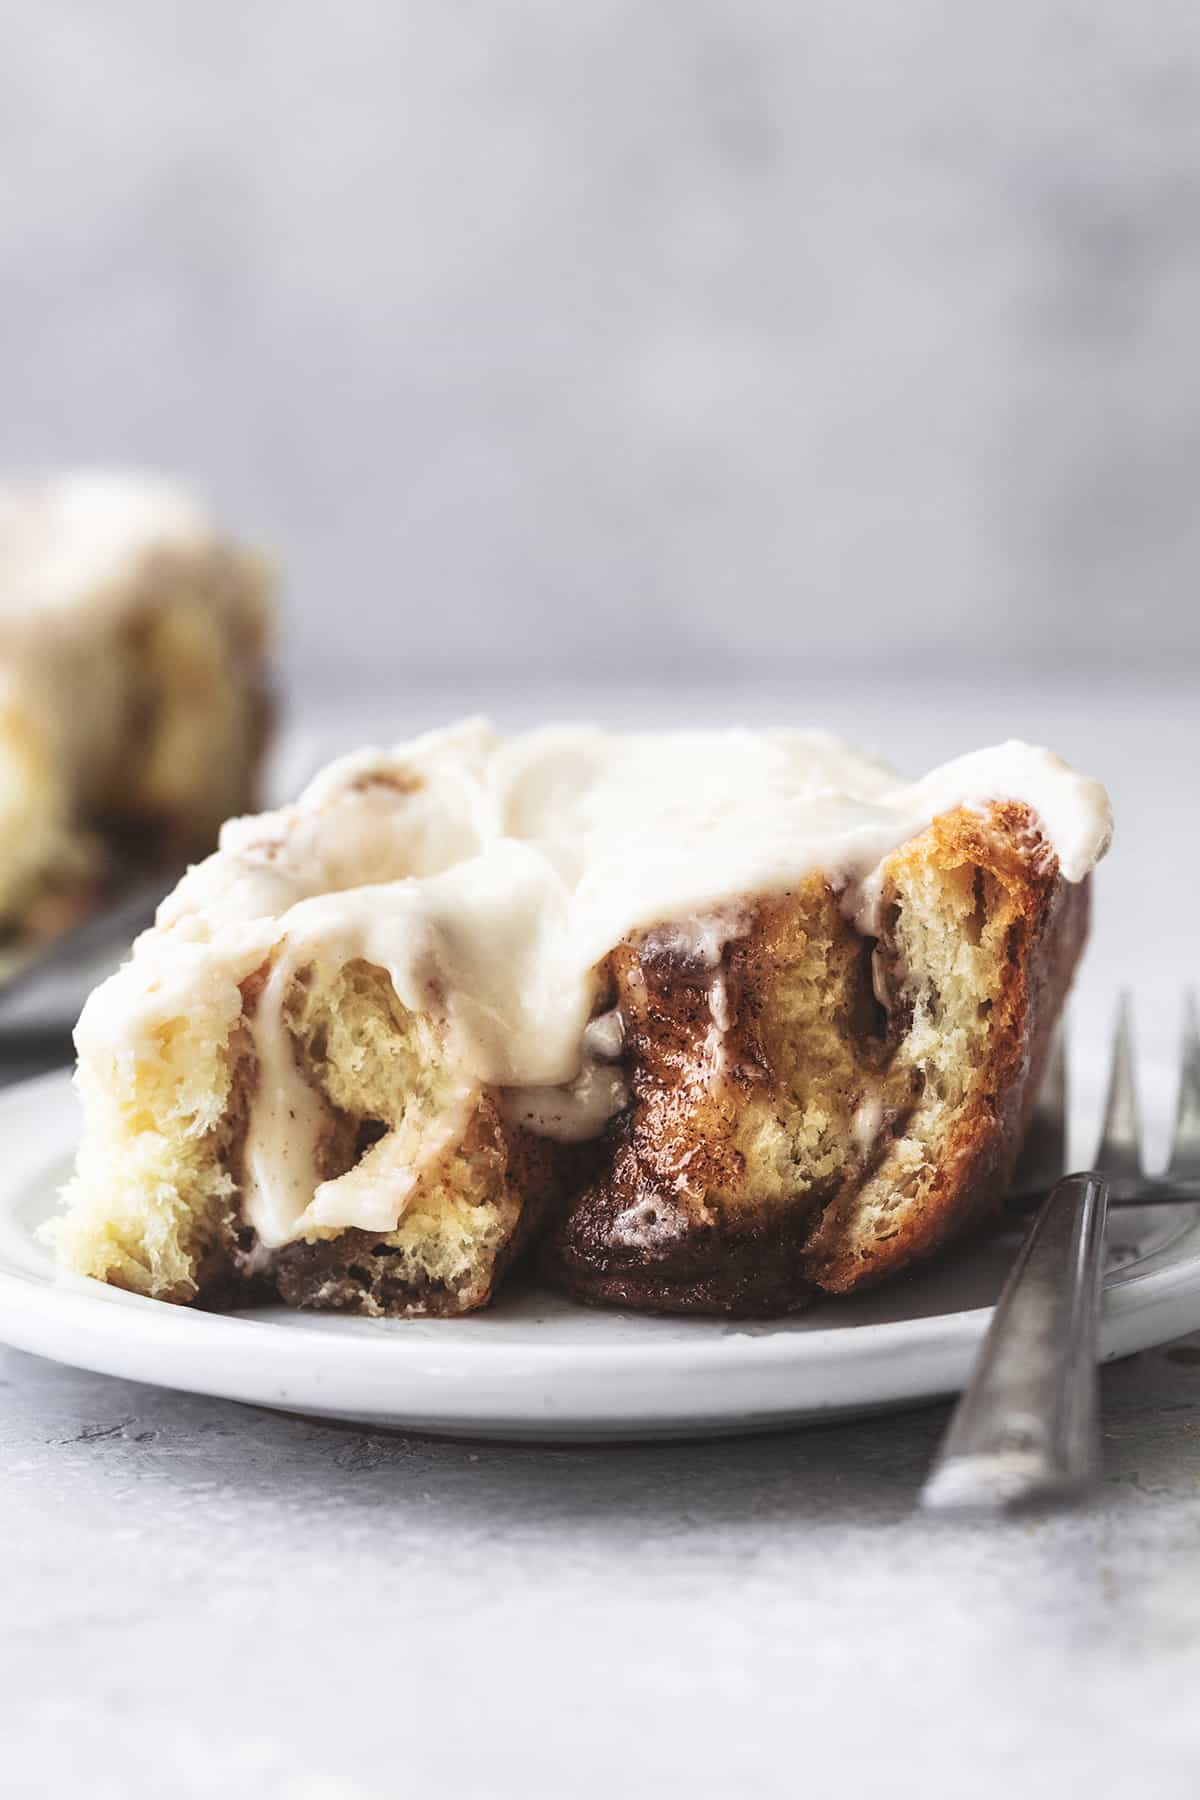 head-on view of half dissection of a cinnamon roll